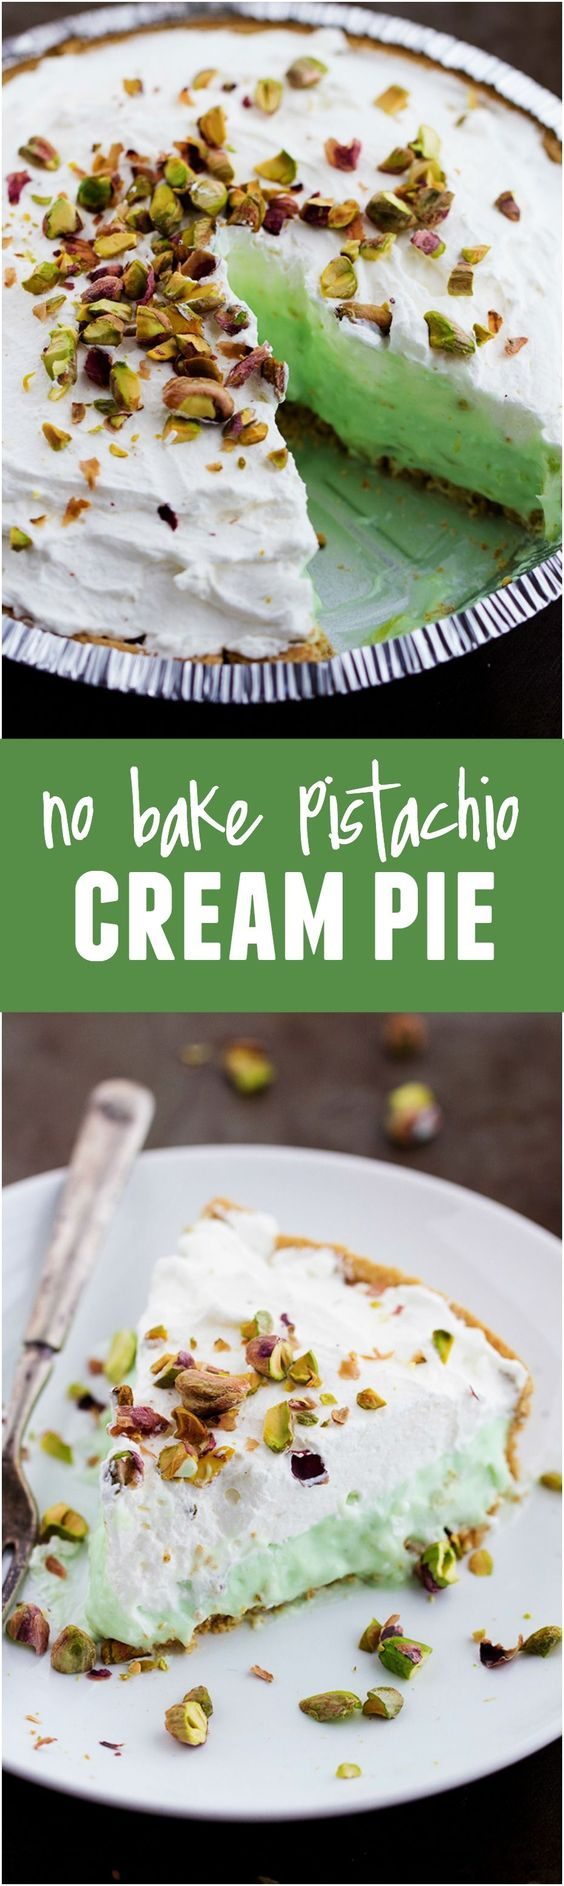 No-Bake Pistachio Cream Pie Dessert Recipe via The Recipe Critic - This Pistachio Cream Pie is No Bake and so easy to make! It is AMAZING!!! - Favorite EASY Pies Recipes - Brunch Dessert No-Bake + Bake Musts